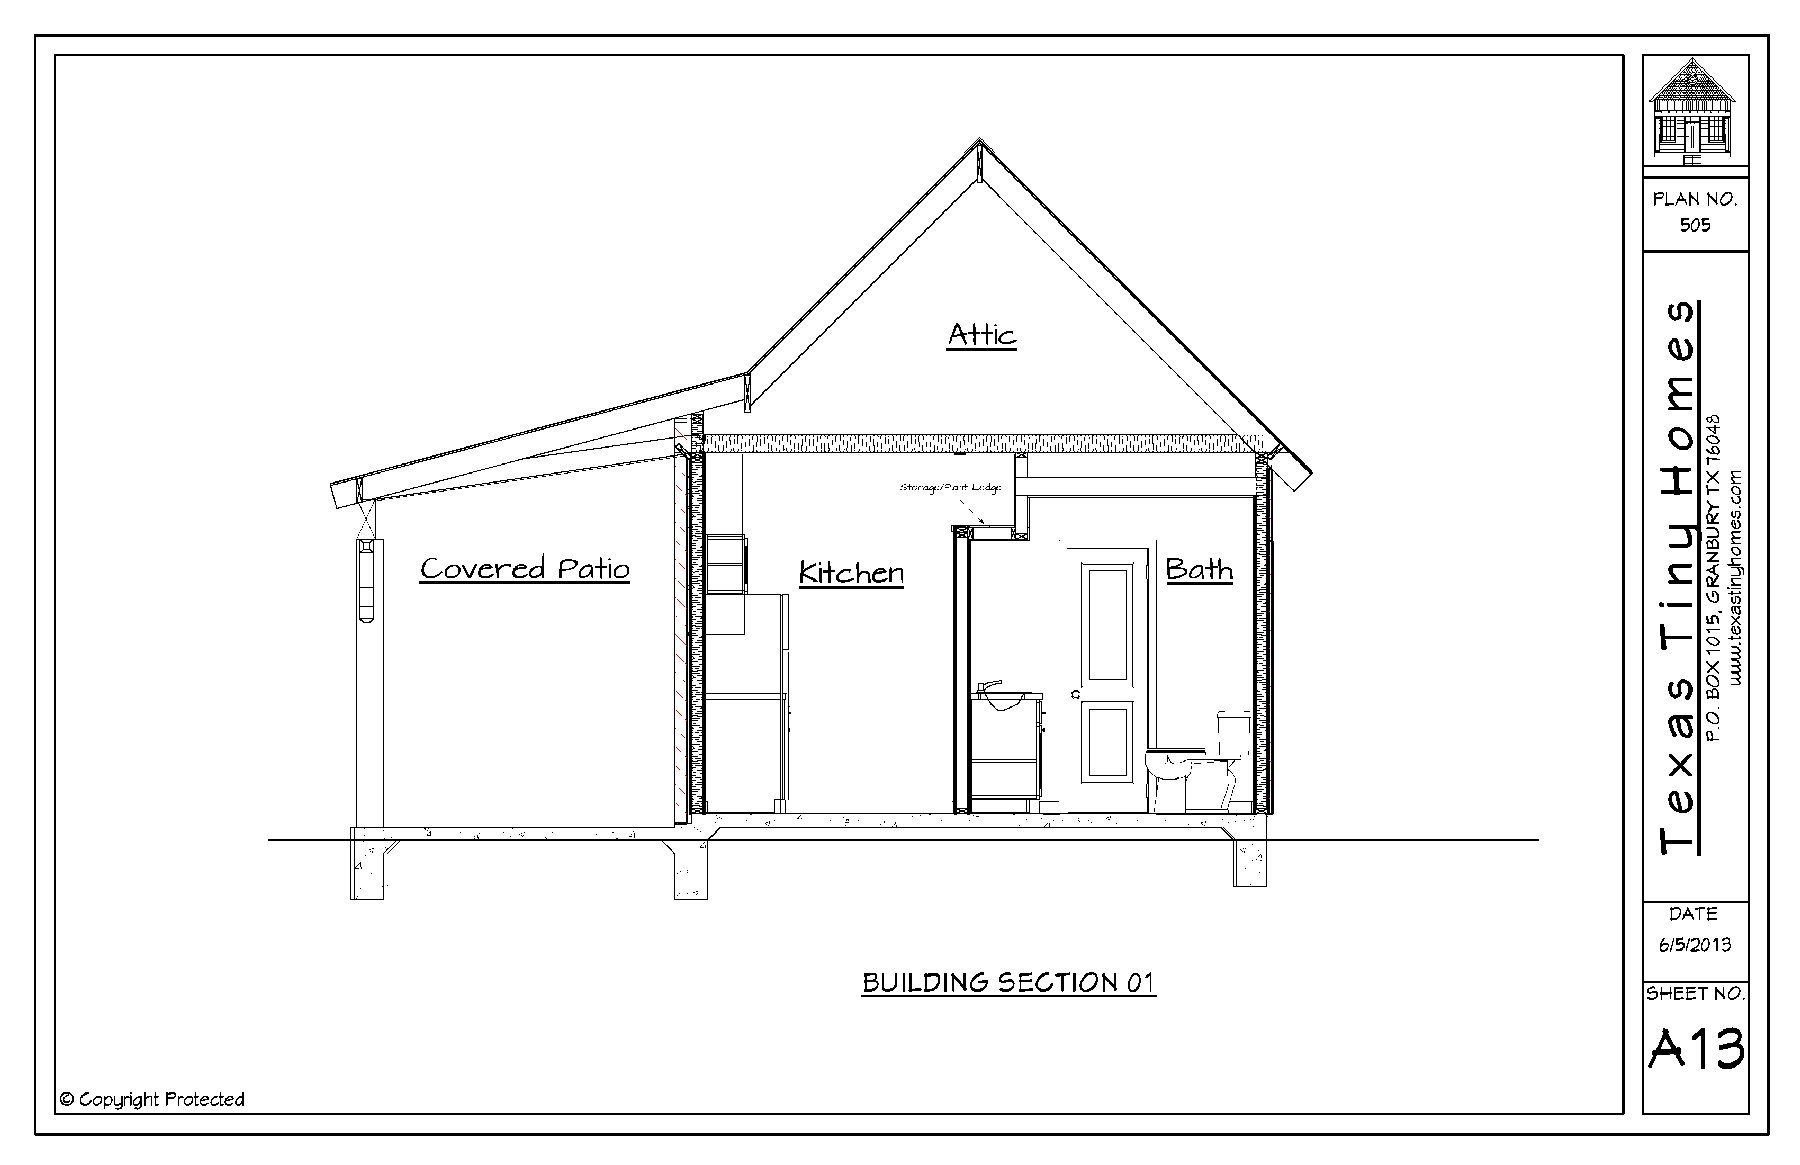 Texas tiny homes plan 505 for Building design plans